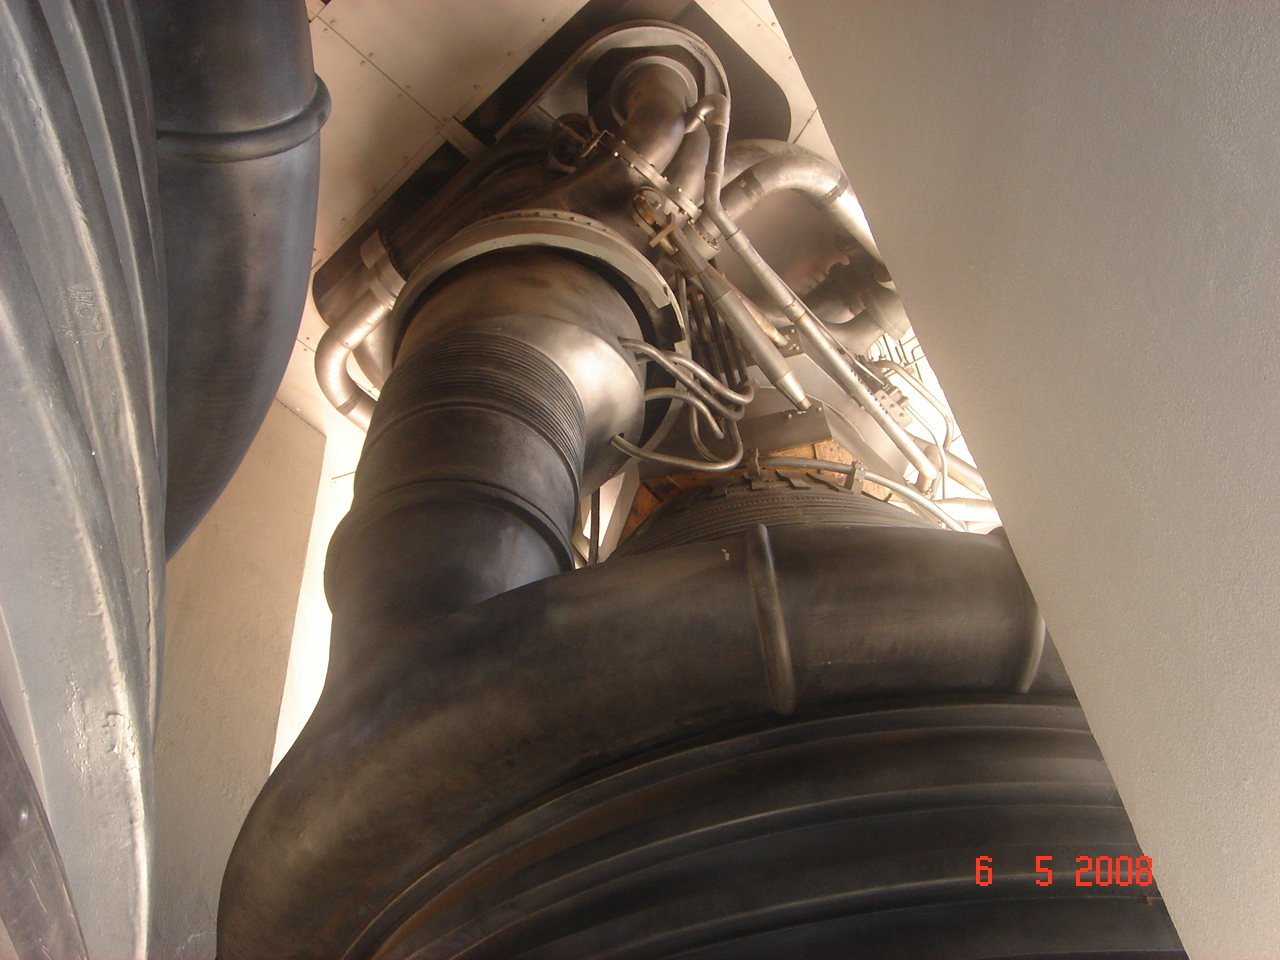 Inside Rocket Engine